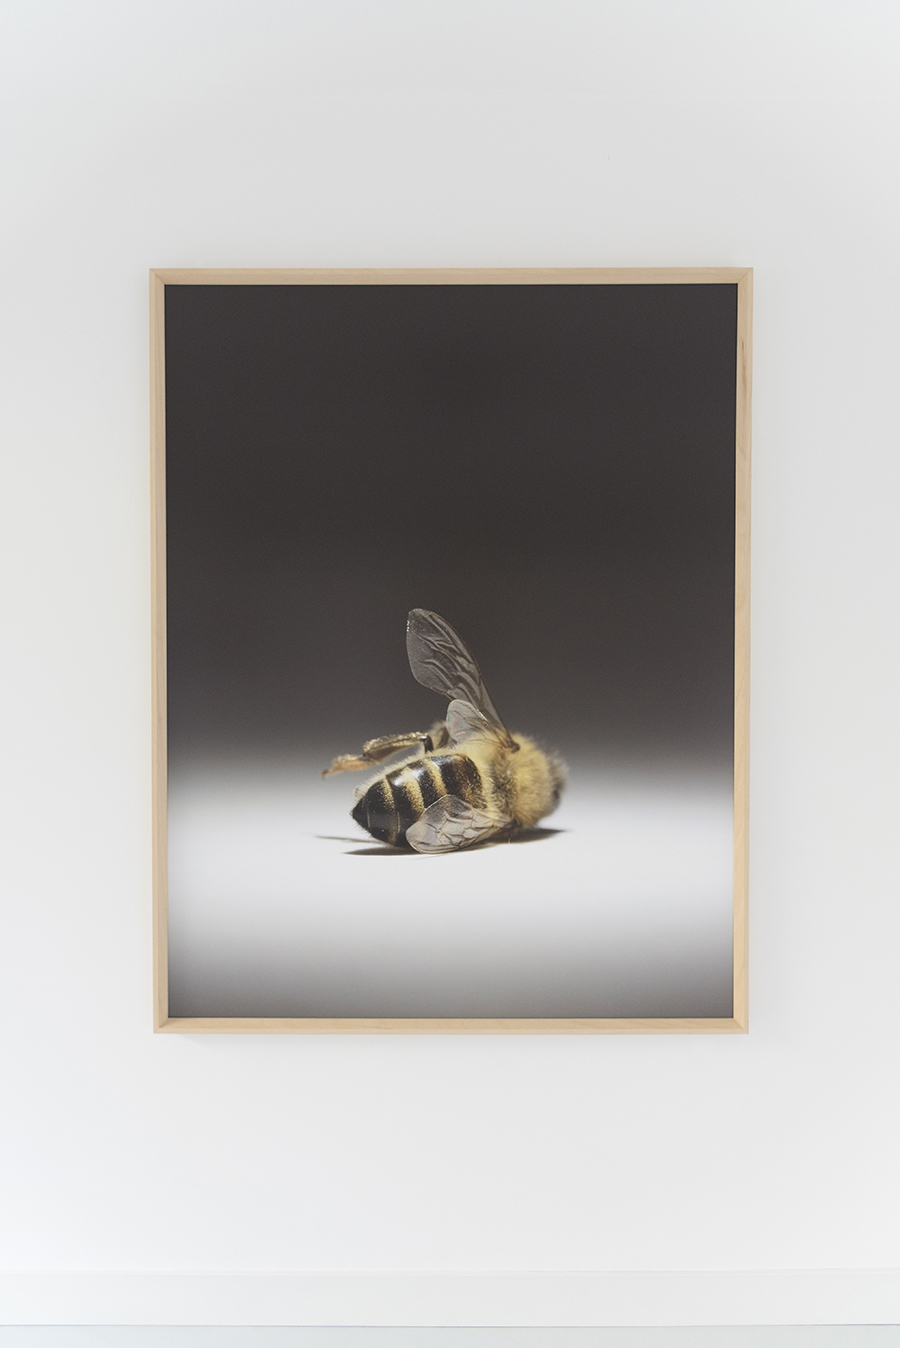 "Martyr   Year : 2017  Materials : Digital print on Canson Platine Fibre Rag, 310grams, framed and mounted on 2mm Dibond  Dimensions : 165 x 128 cm  Edition : 3 signed pieces / SOLD OUT  Photo : Studio Libertiny  This carefully composed large photograph is of a dead honeybee that I found in front of a beehive. The image is both symbolic and literal. The death, slow and gentle, is played out on a theatre stage. There is no blood, no sign of old age. The bee, which could be sleeping, is anonymous as its face is turned away from the audience. It does and it will imply many themes such as sacrifice or raise a question of fate and predestination. However, as it is with current political turmoils, the victims are always the hardworking and the innocent. Just like the famous painting The Death of Marat by Jacques-Louis David, the photo doesn't show the murderer. Our Charlotte Corday is ignorance. In another suddle reference, the photo has exactly the same dimensions as the original painting hanging in Musee Louvre and Royal Museums of Fine Arts of Belgium.  The fragility of life and nature couldn't not be more obvious. Today, there are still loud political figures who deny the scale of global warming is a result of human activity despite all the evidence. The truth has become a matter of an opinion. Everybody seems to quote Albert Einstein on what he said about bees. However, he also said: ""Two things are infinite: the universe and human stupidity; and I'm not sure about the universe."" The artwork also appeared on the cover of TL Magazine issue 26 in collaboration with Spazio Nobile."